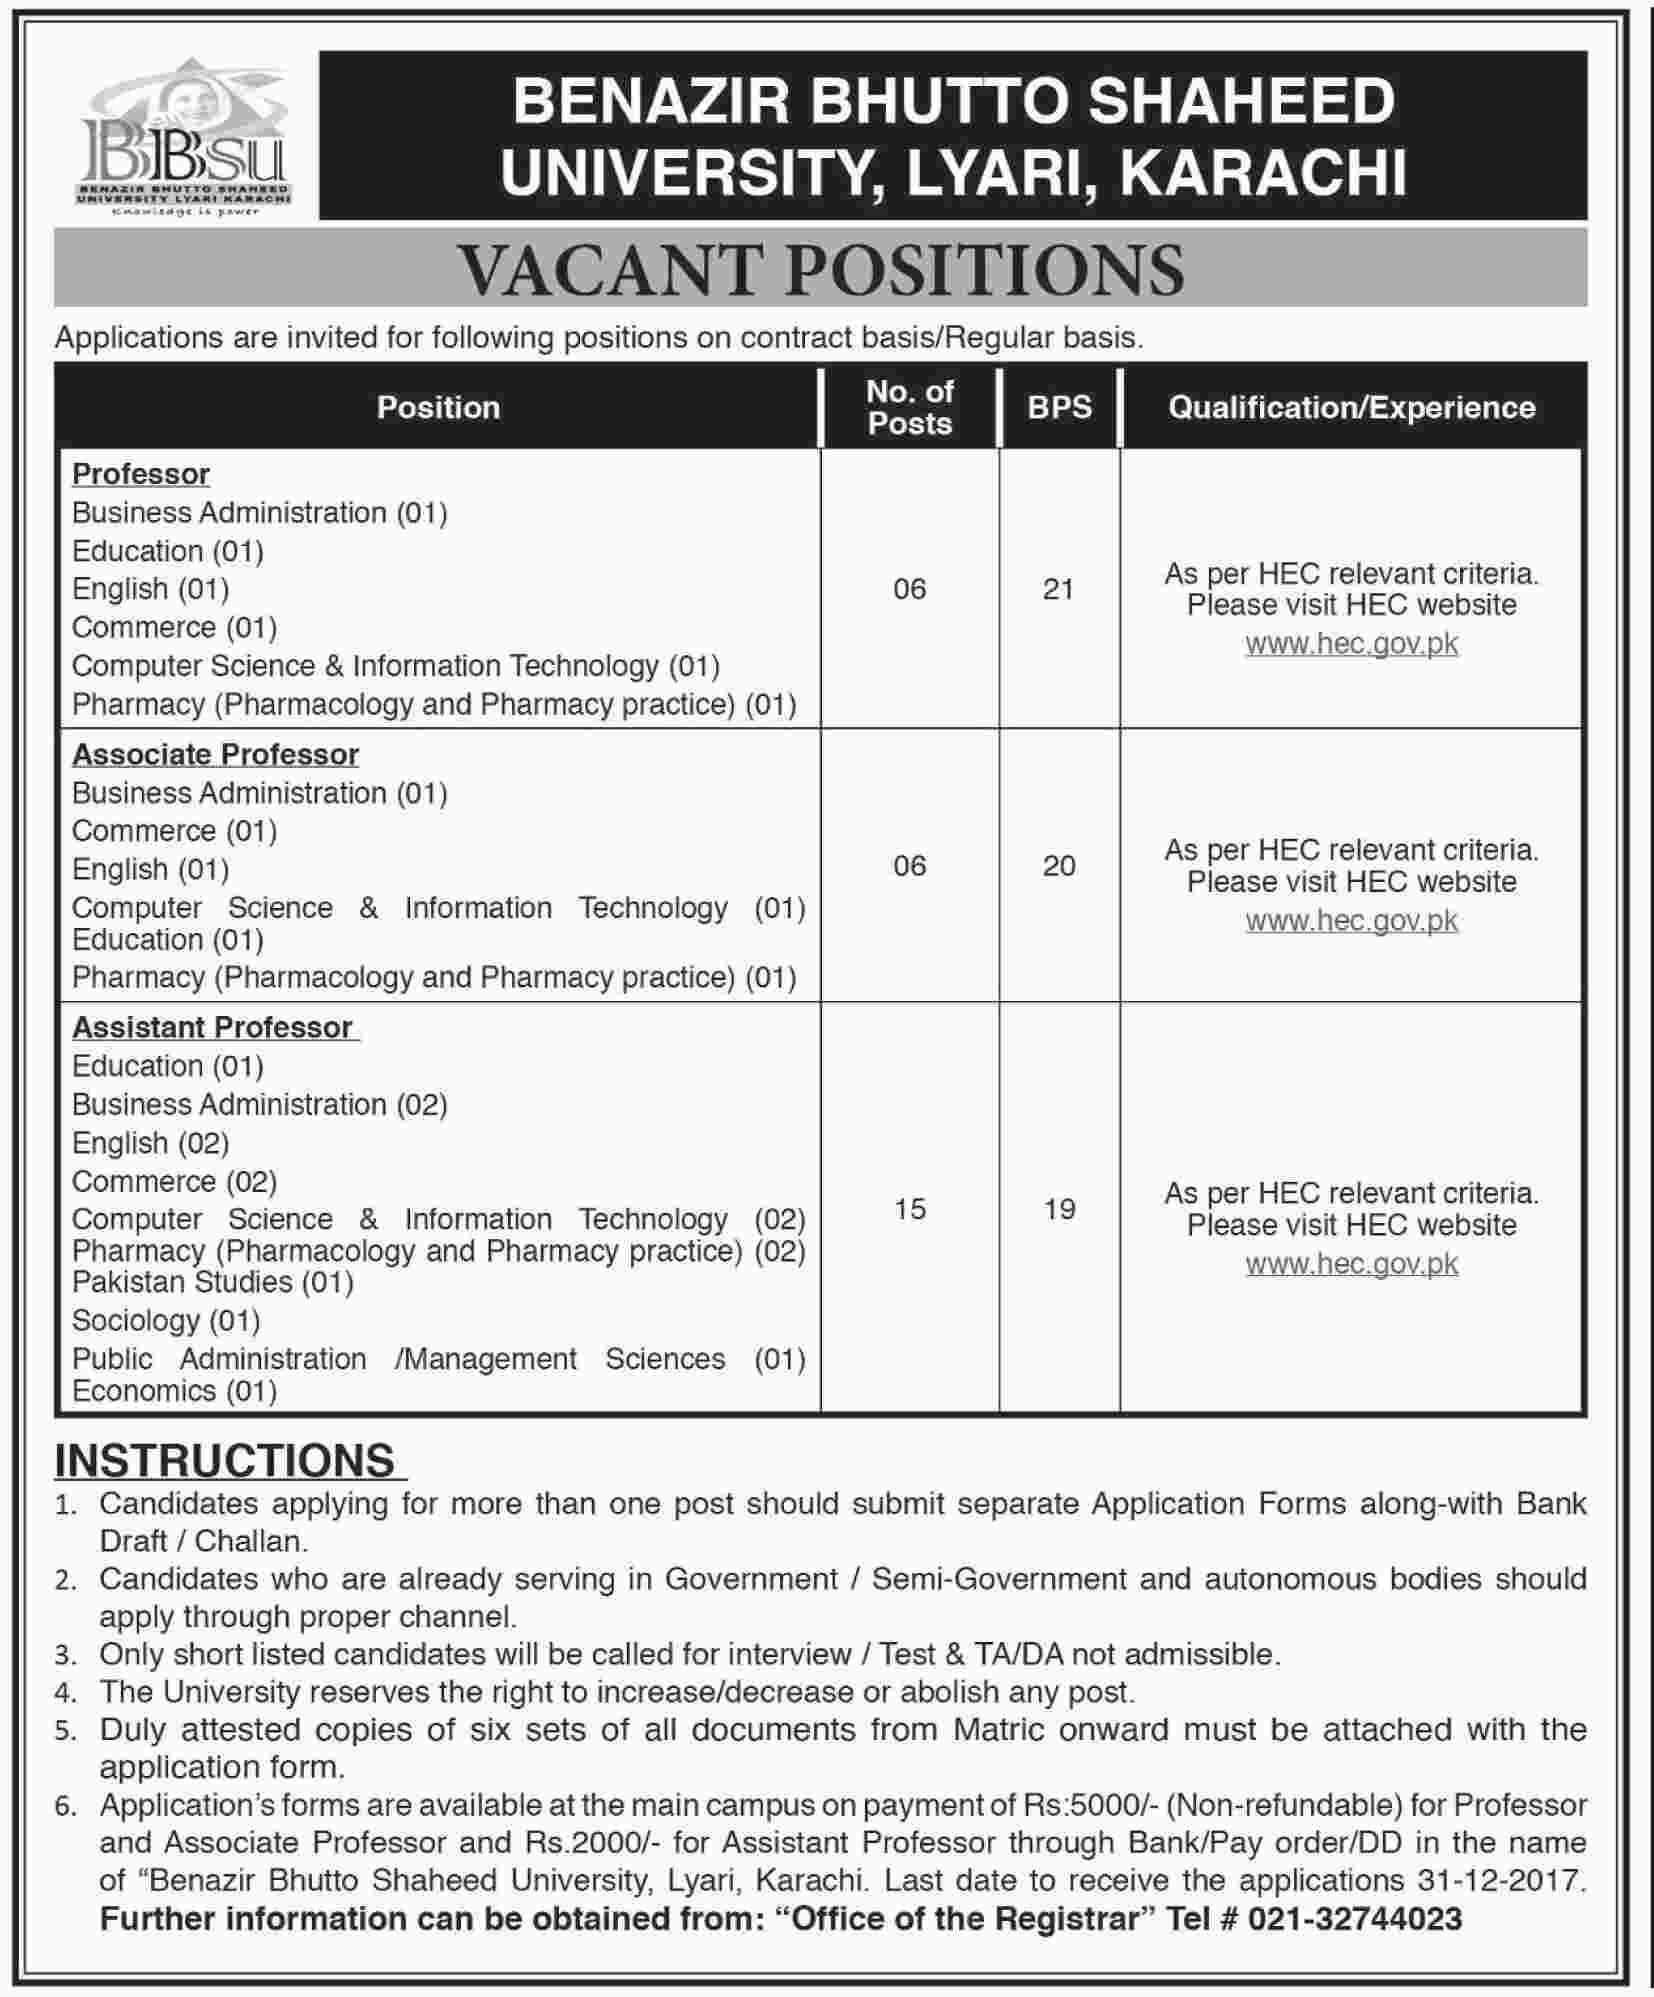 Karachi Benazir Bhutto Shaheed University 27 Jobs Jang Newspaper 13 December 2017